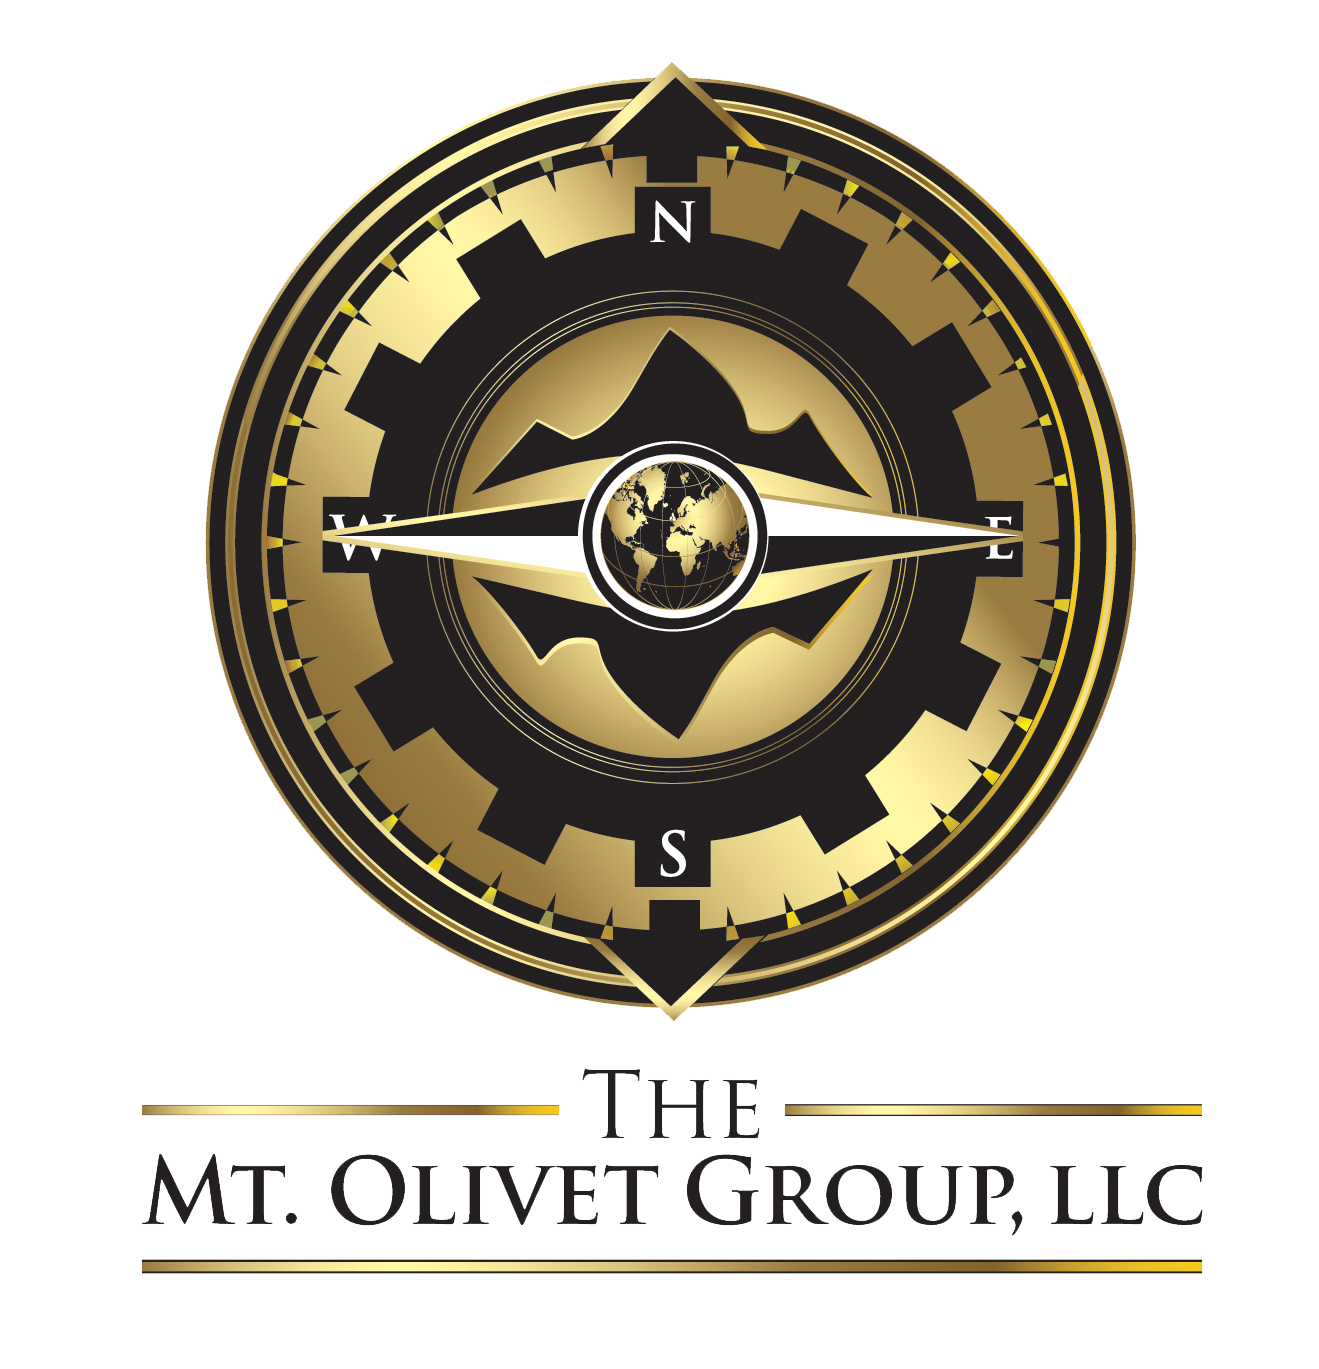 The Mt. Olivet Group, LLC